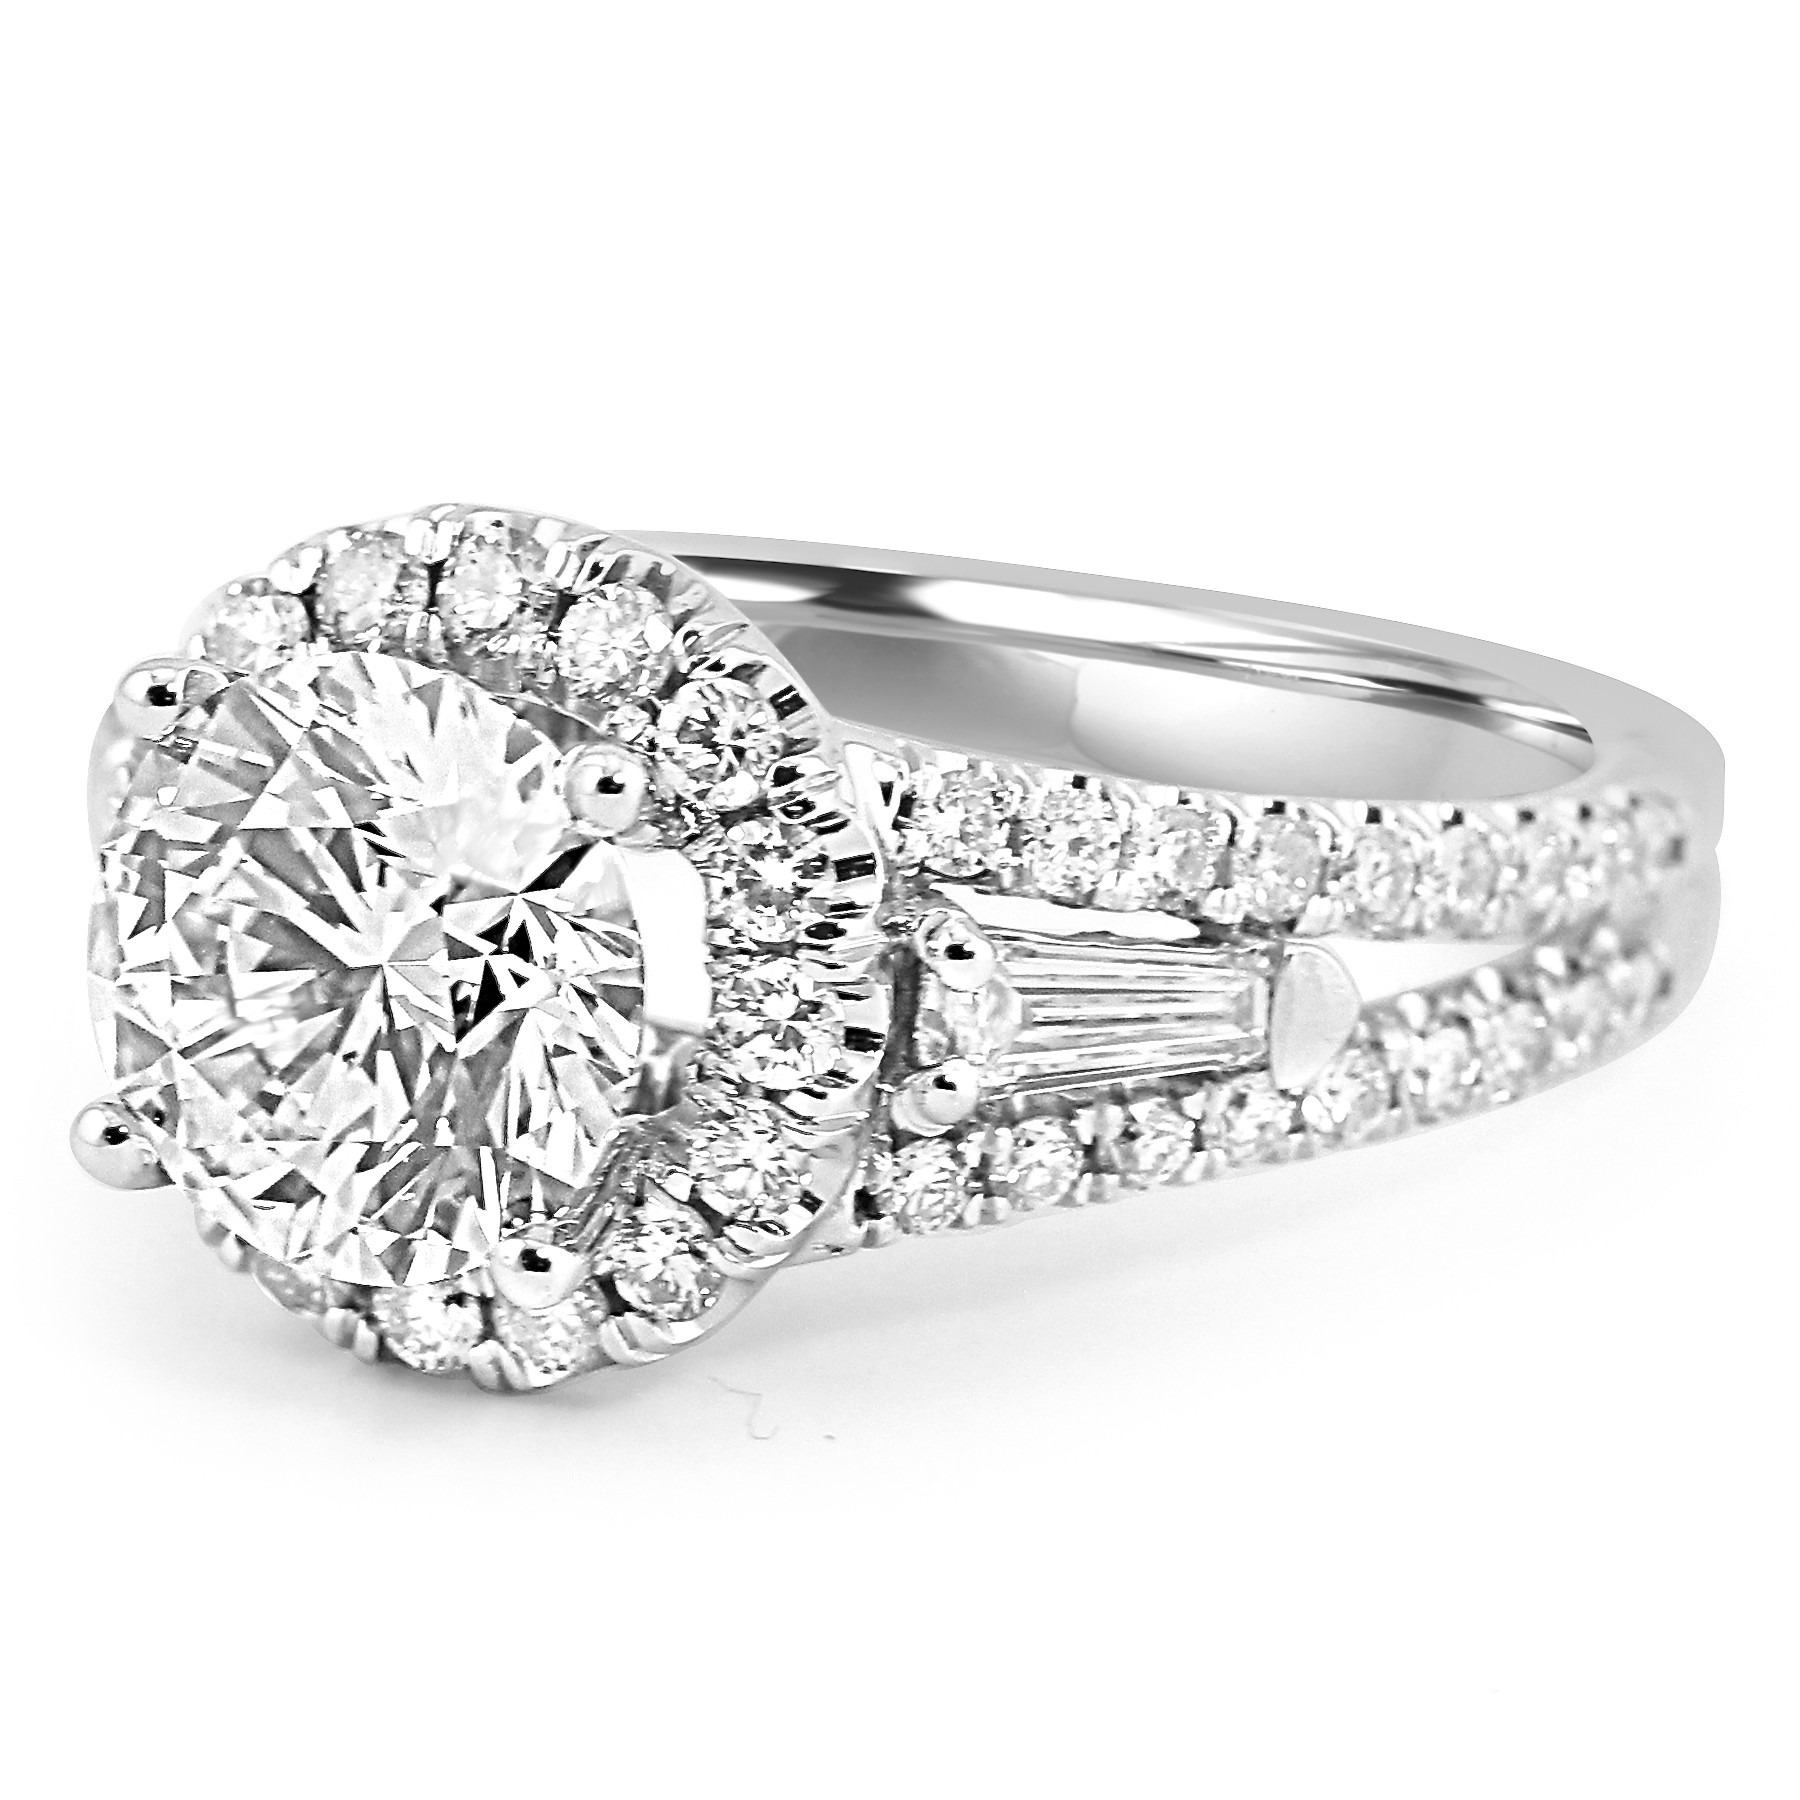 ring er unique engagement semi mount market product accented baguette diamond home rings